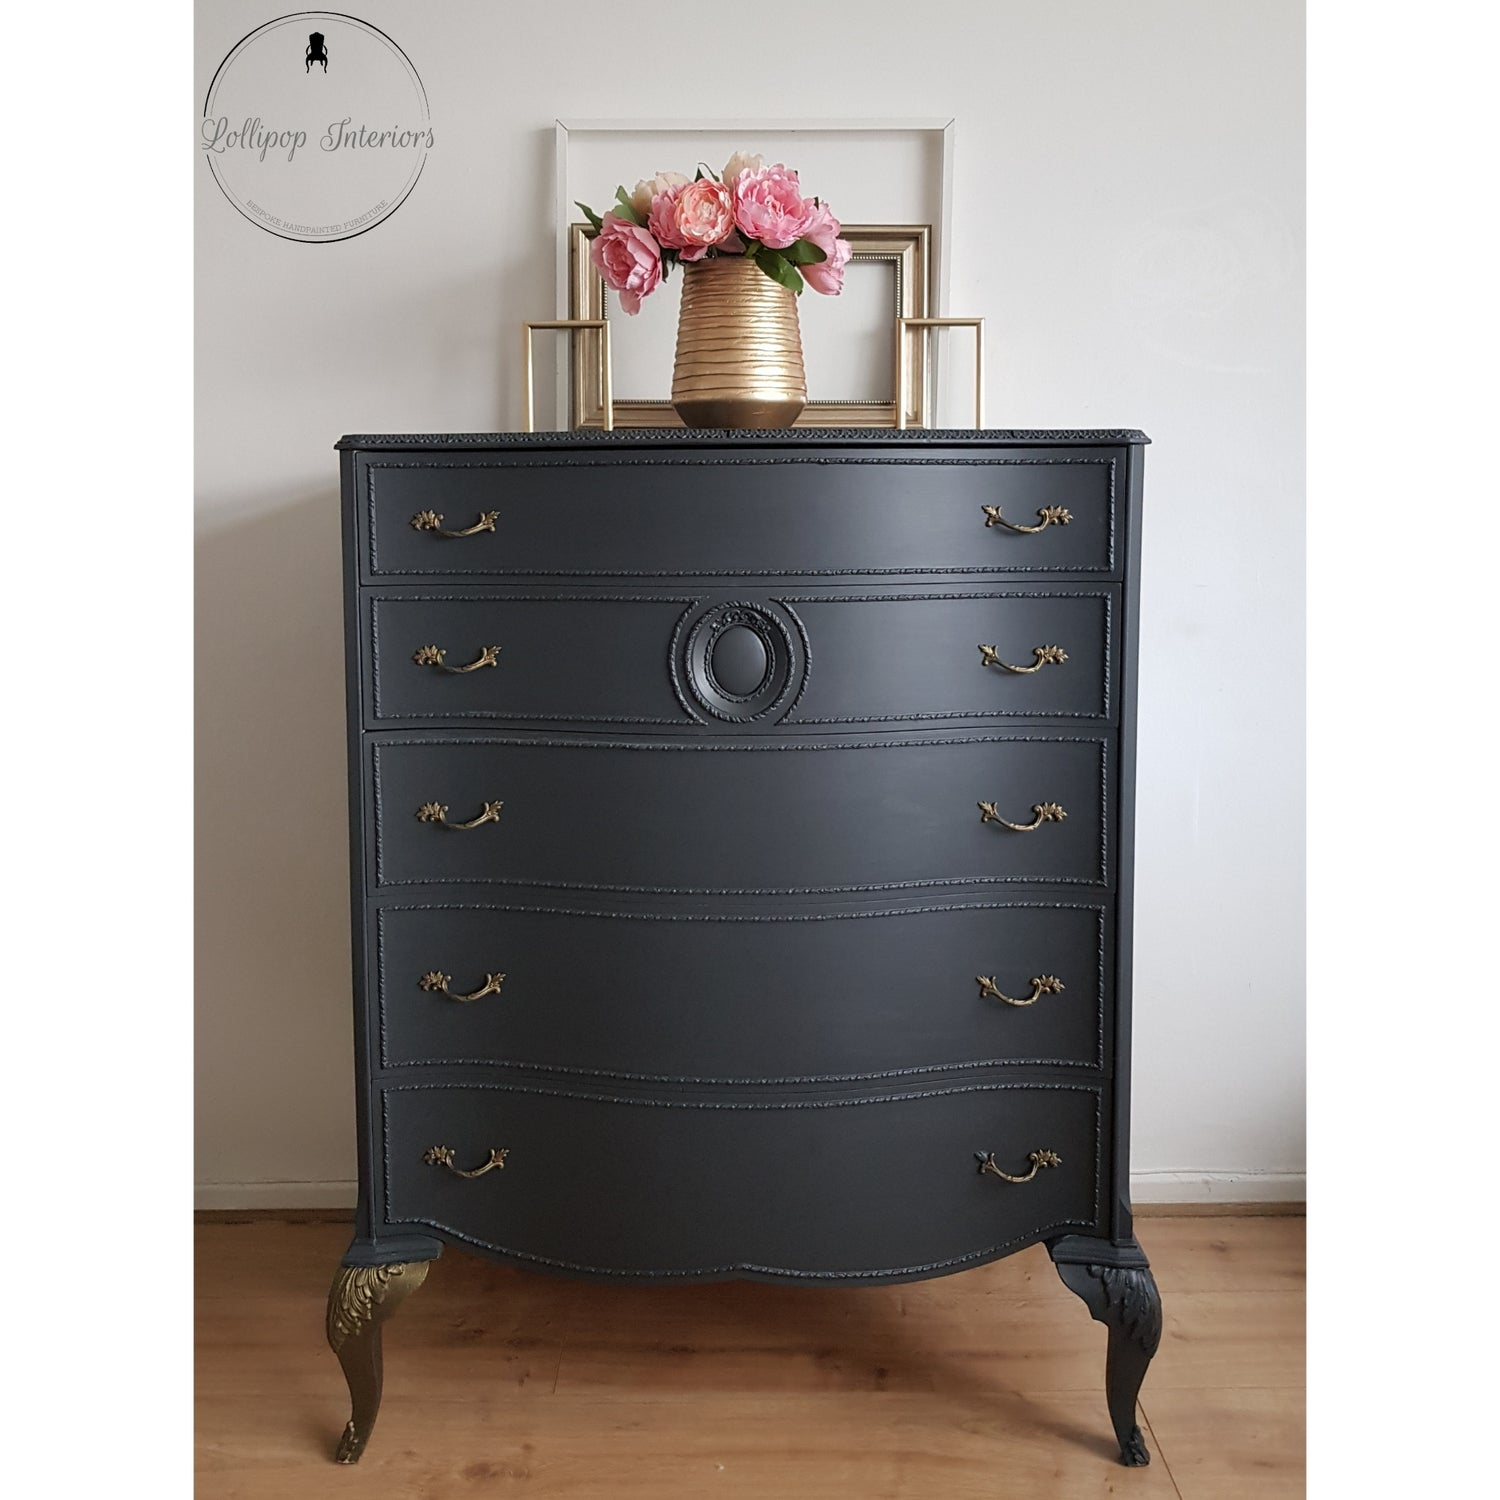 Image of Chest of drawers